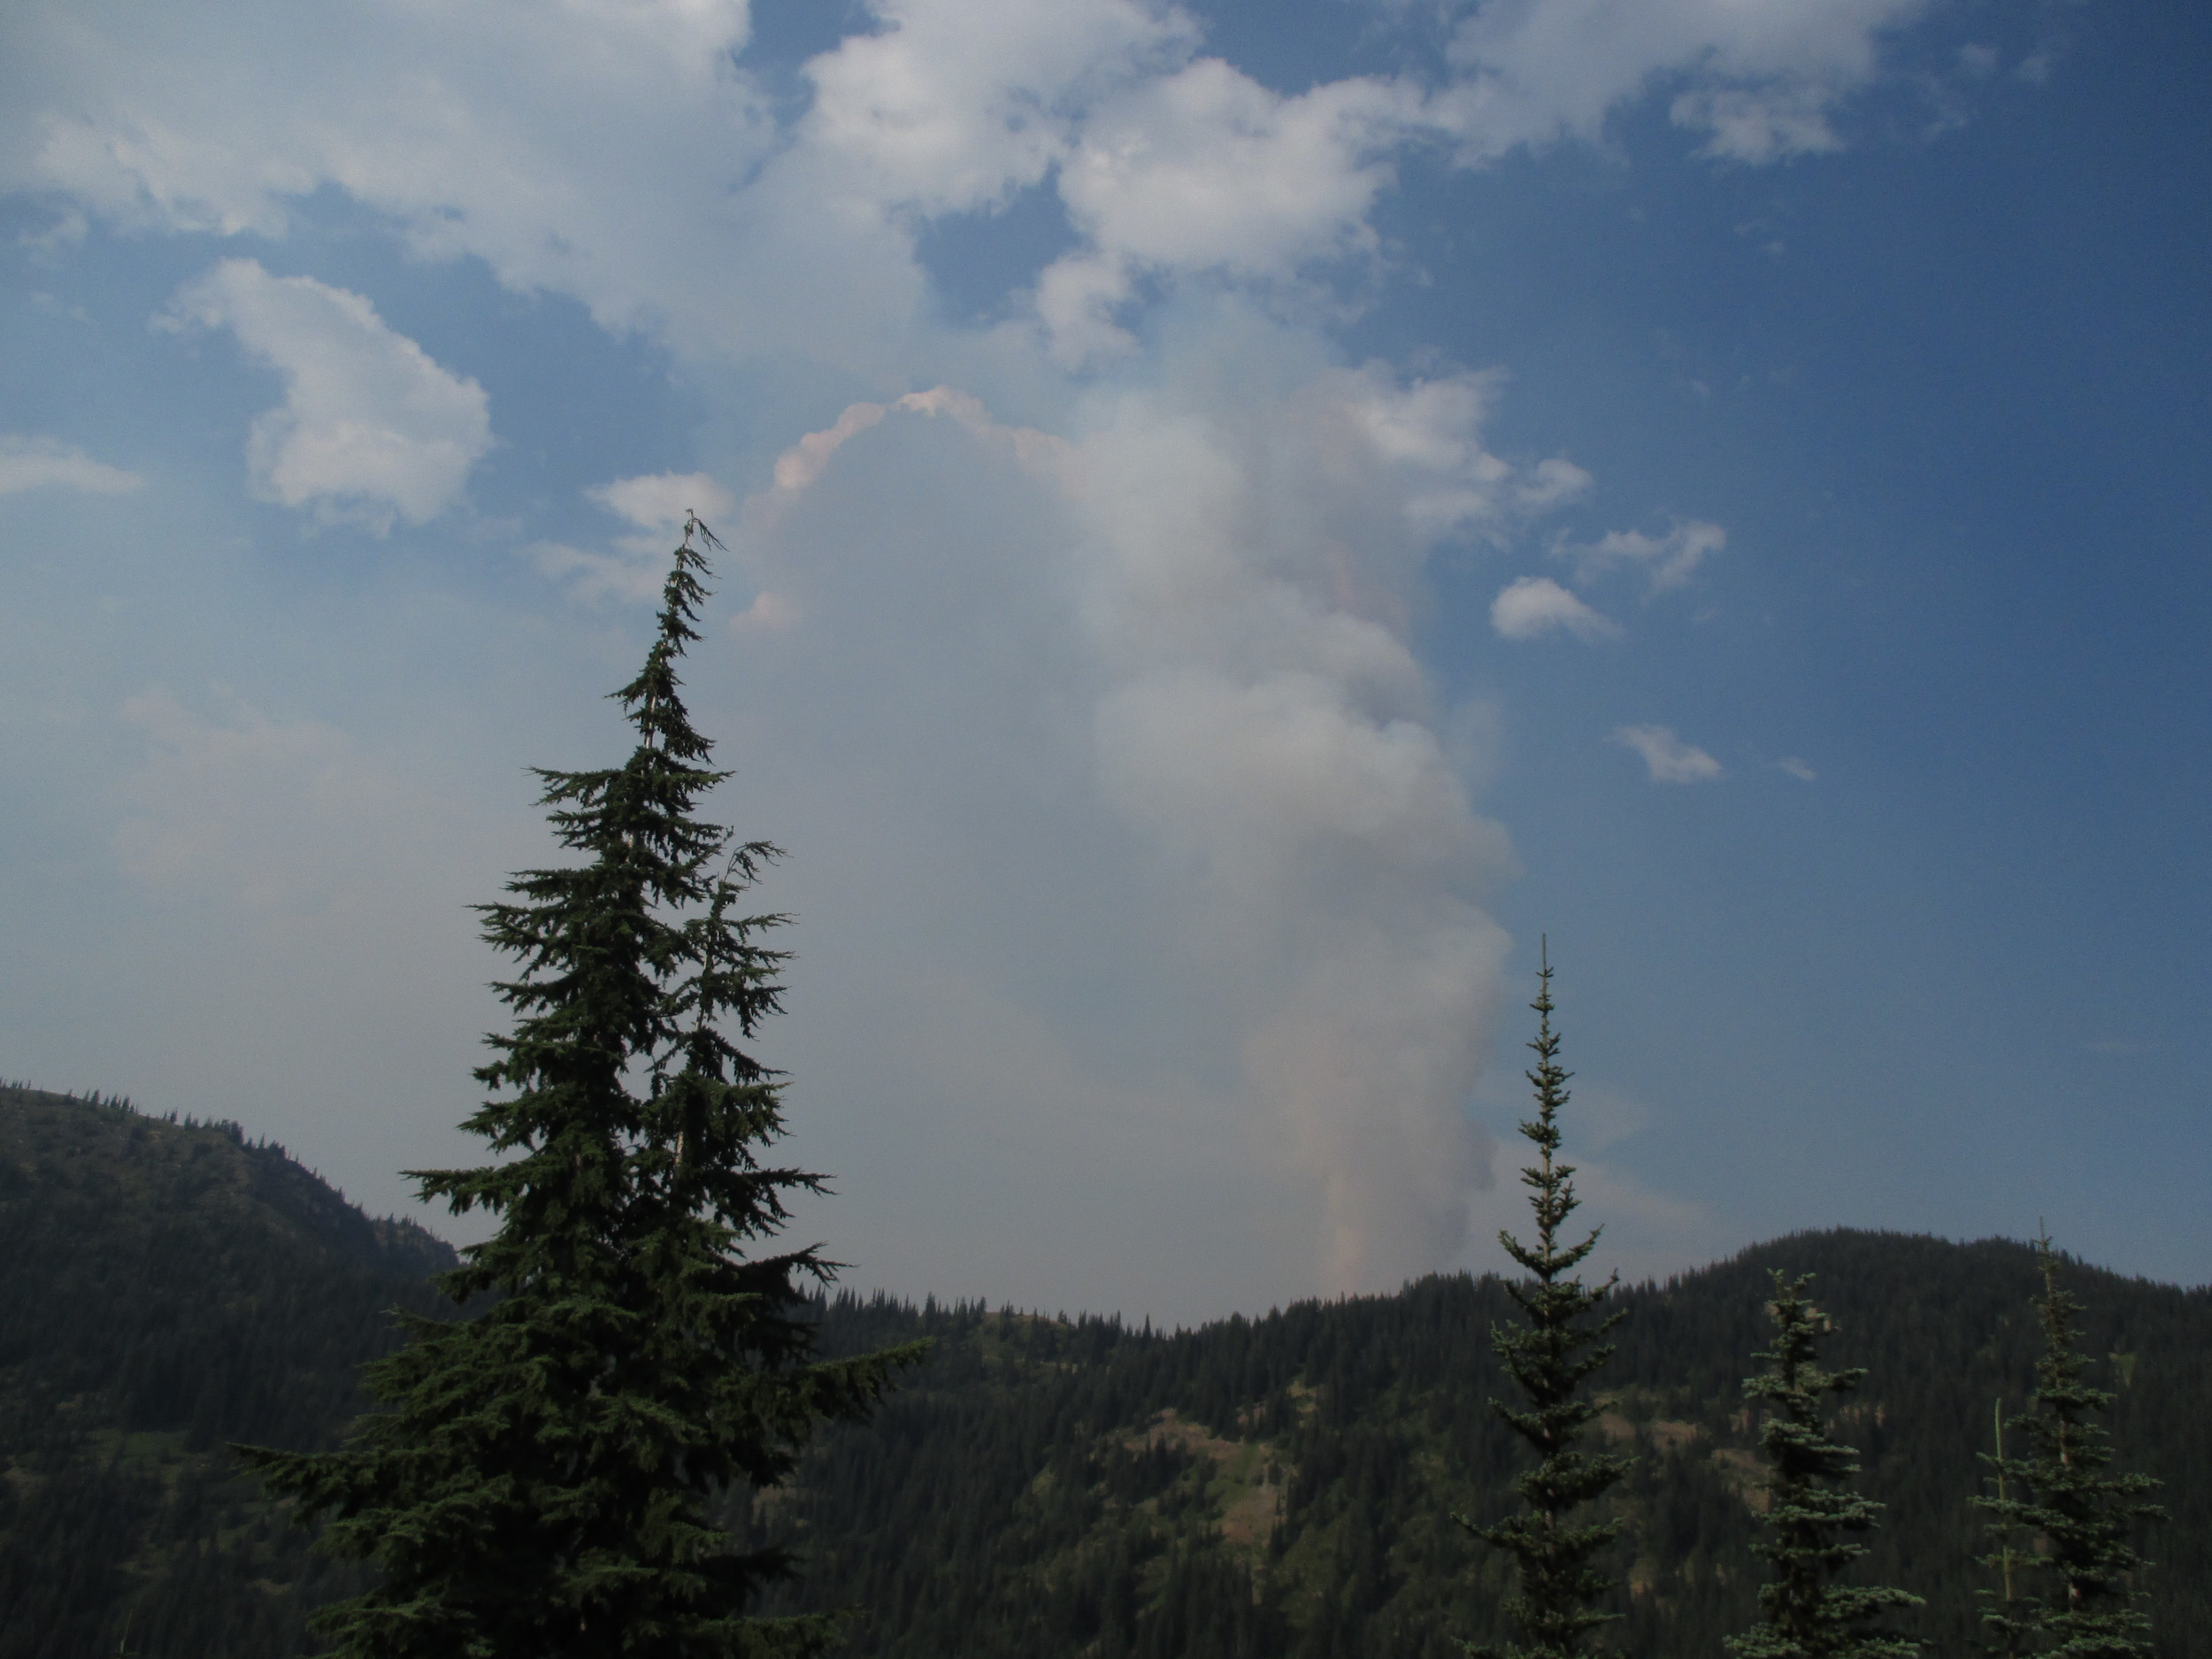 Pyrocumlus clouds forming in the hot, smokey air rising and condensing above the wildfire.  Photo b MM Ruth